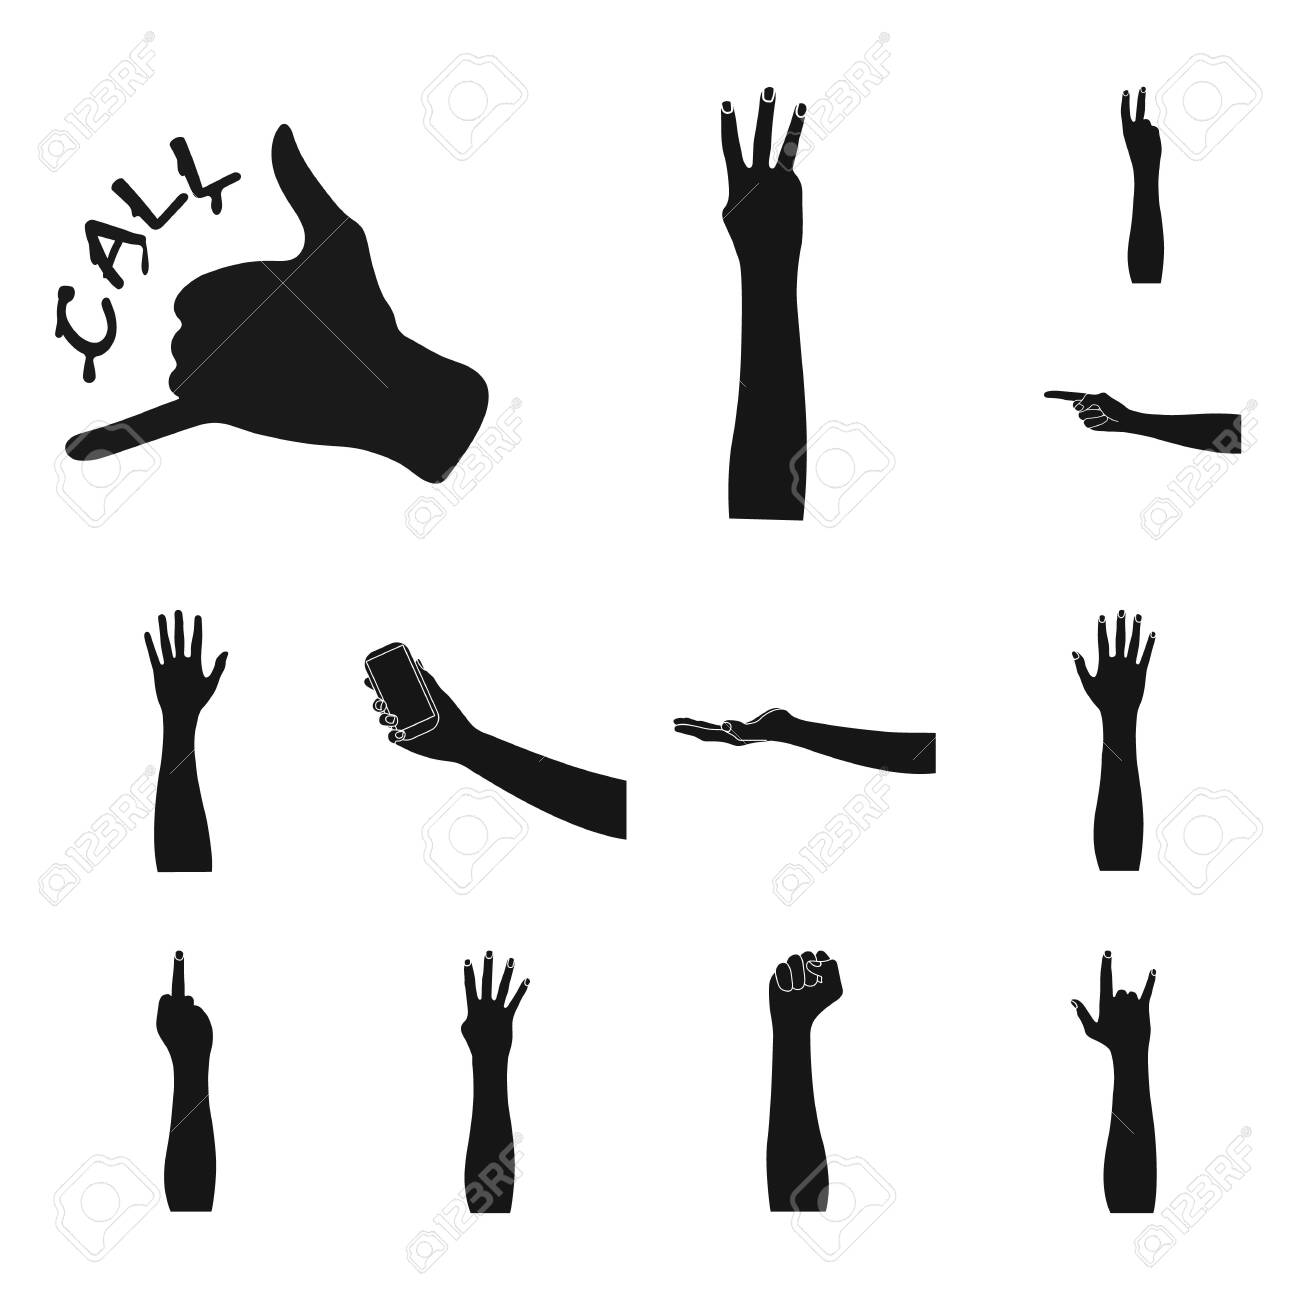 Isolated Object Of Animated And Thumb Icon Set Of Animated And Stock Photo Picture And Royalty Free Image Image 128967533 Newpremiumbuilder animated icons | premiere pro extension. 123rf com